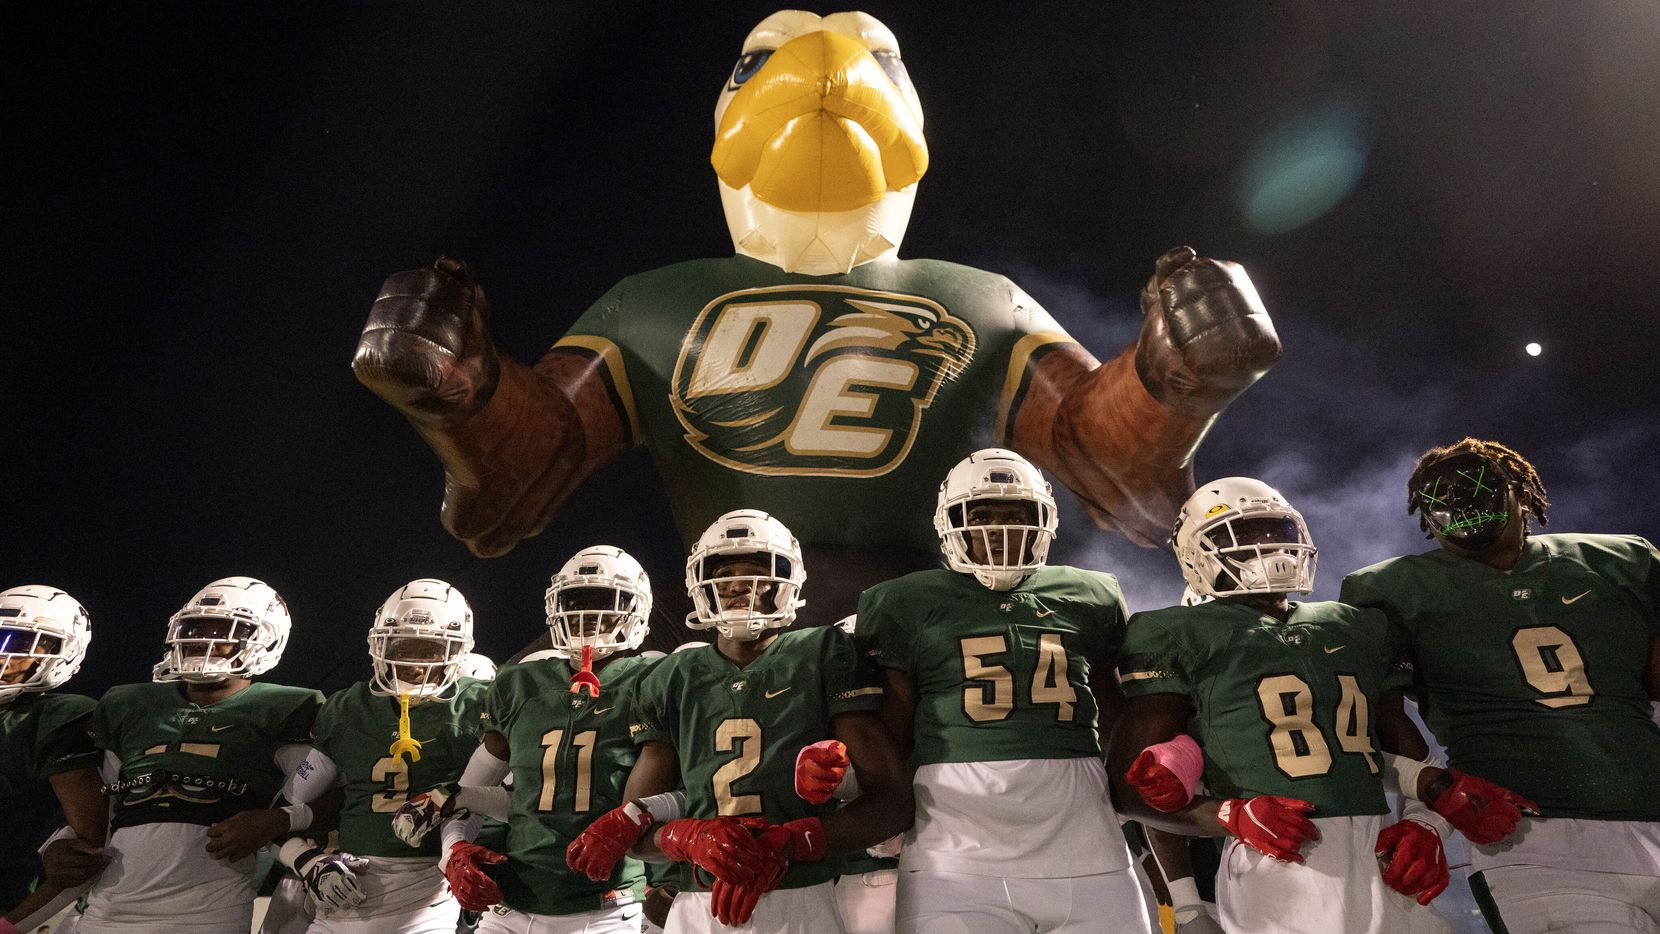 The DeSoto Eagles take the field before a high school football game against Cedar Hill on Friday, Oct. 15, 2021 at Eagle Stadium in DeSoto, Texas. (Jeffrey McWhorter/Special Contributor)